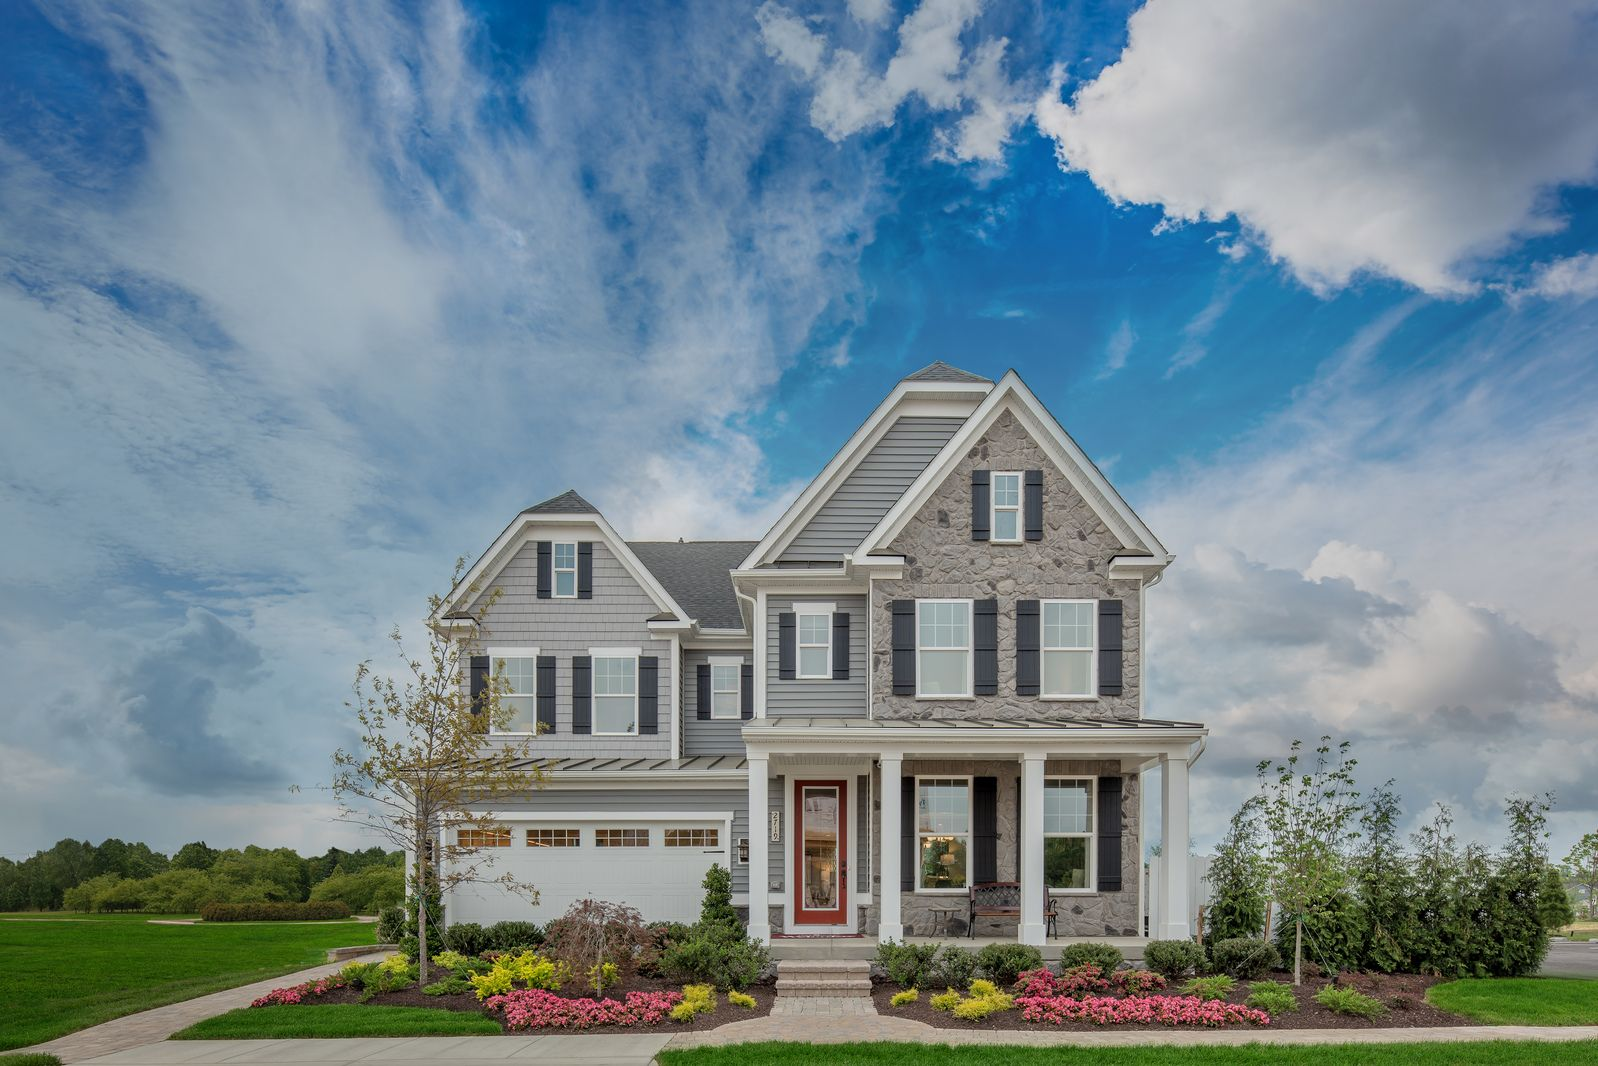 LUXURY MEETS CONVENIENCE IN CLARKSBURG